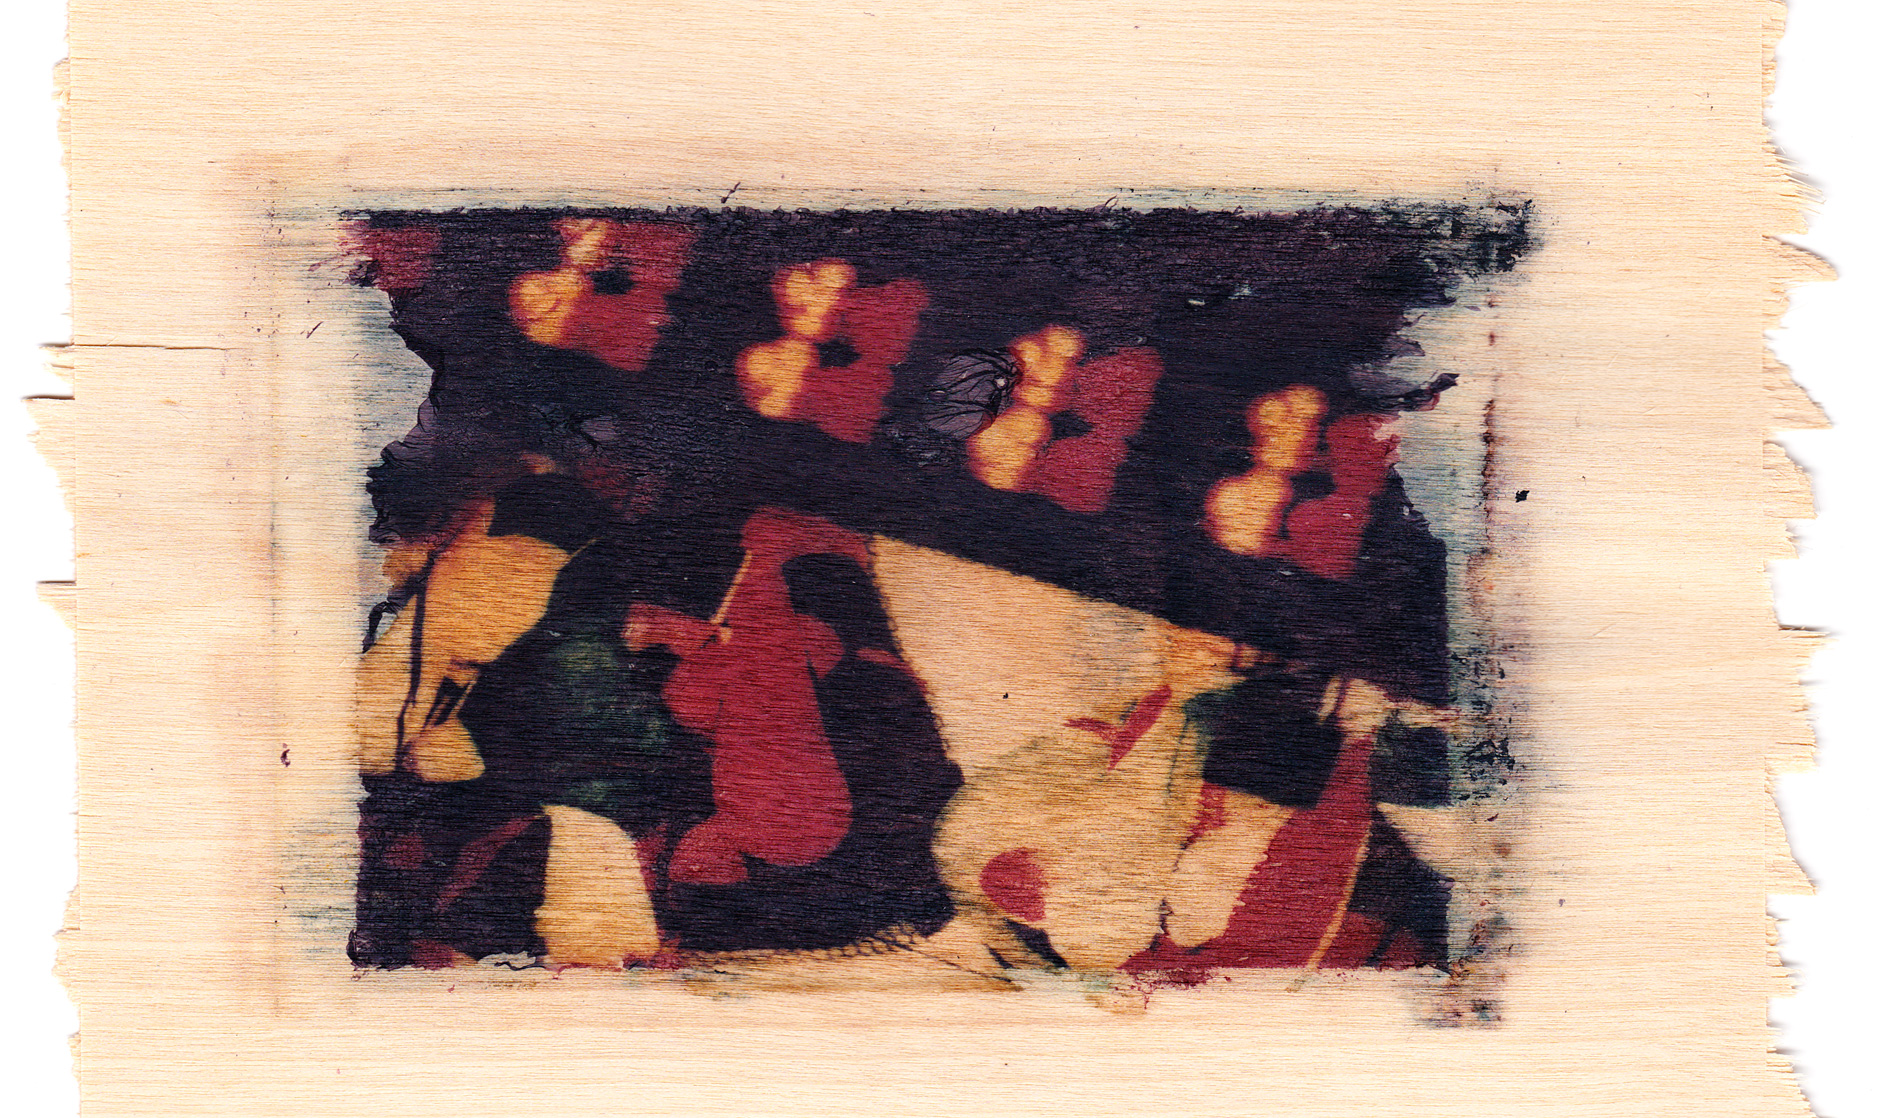 Polaroid transfer on birch wood of teddy bears in a carnival stand